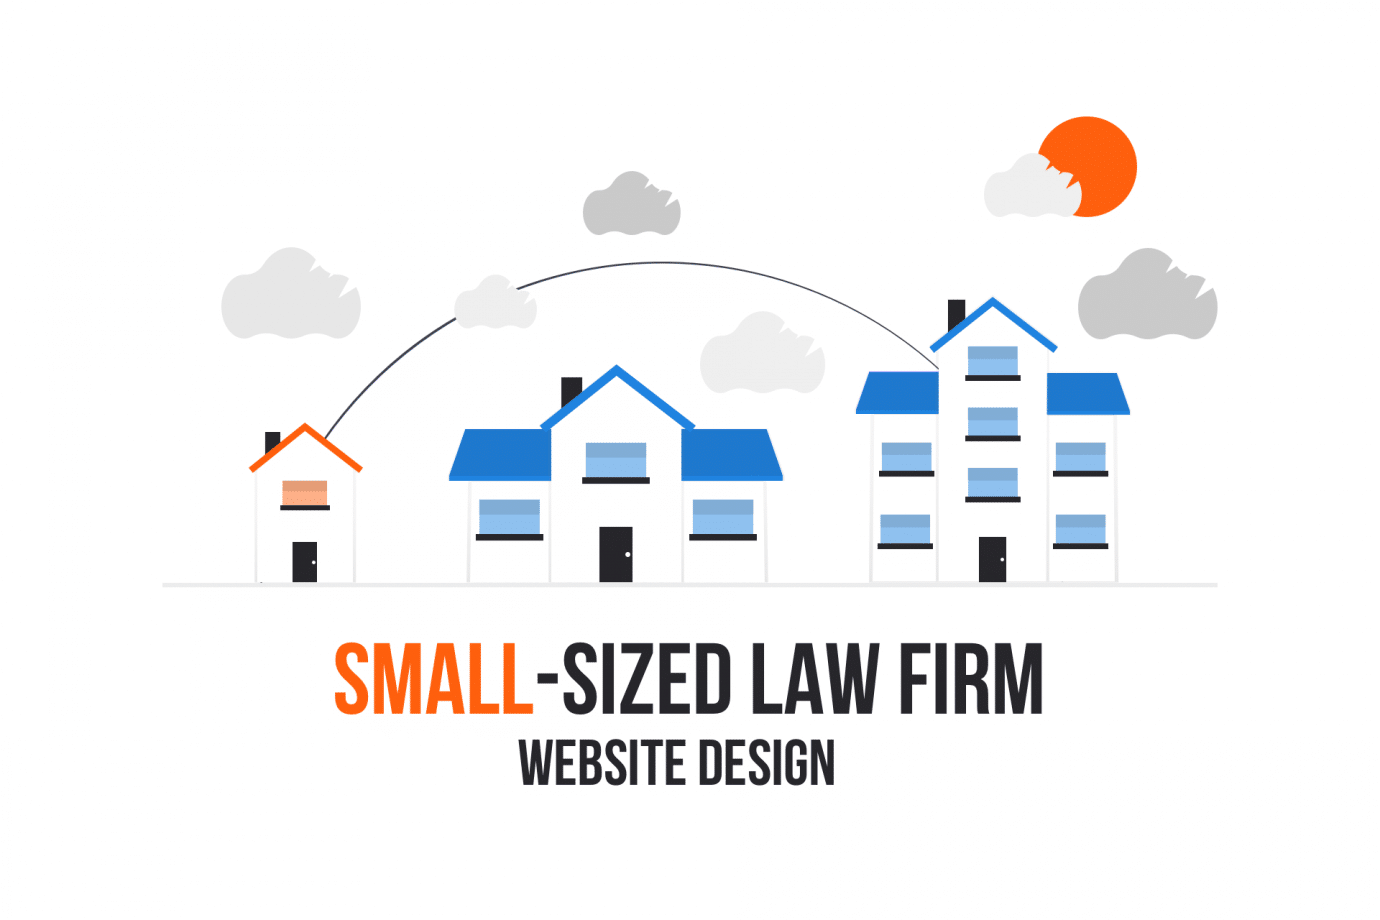 Small Law Firm Website Design